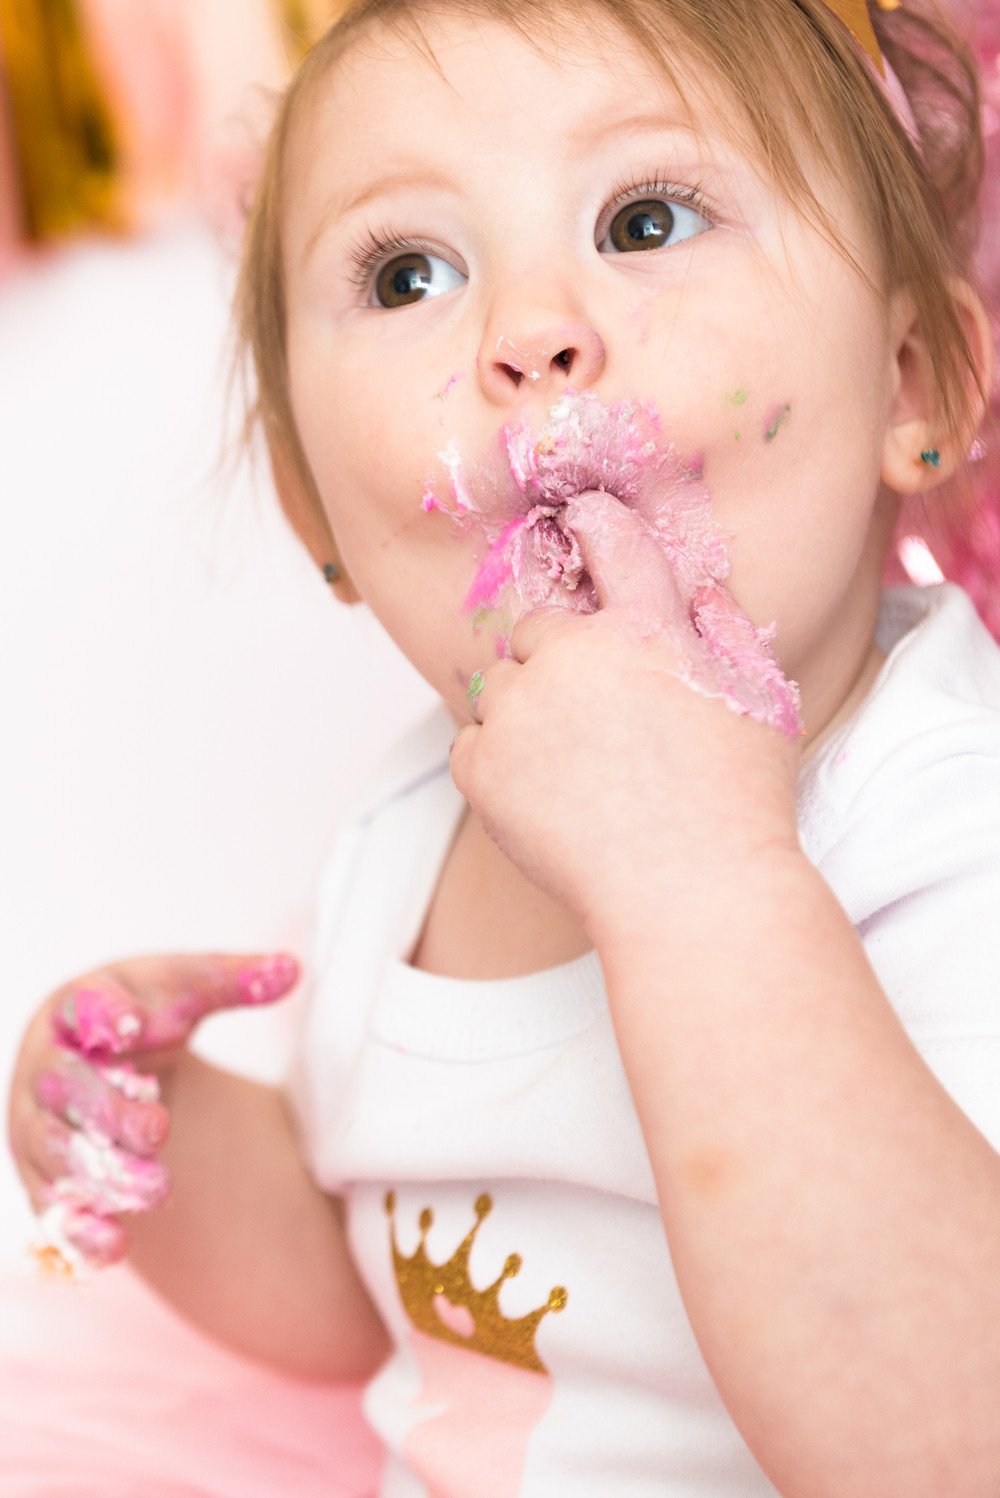 First cake smash session for one year old girl. Her face is covered in frosting.